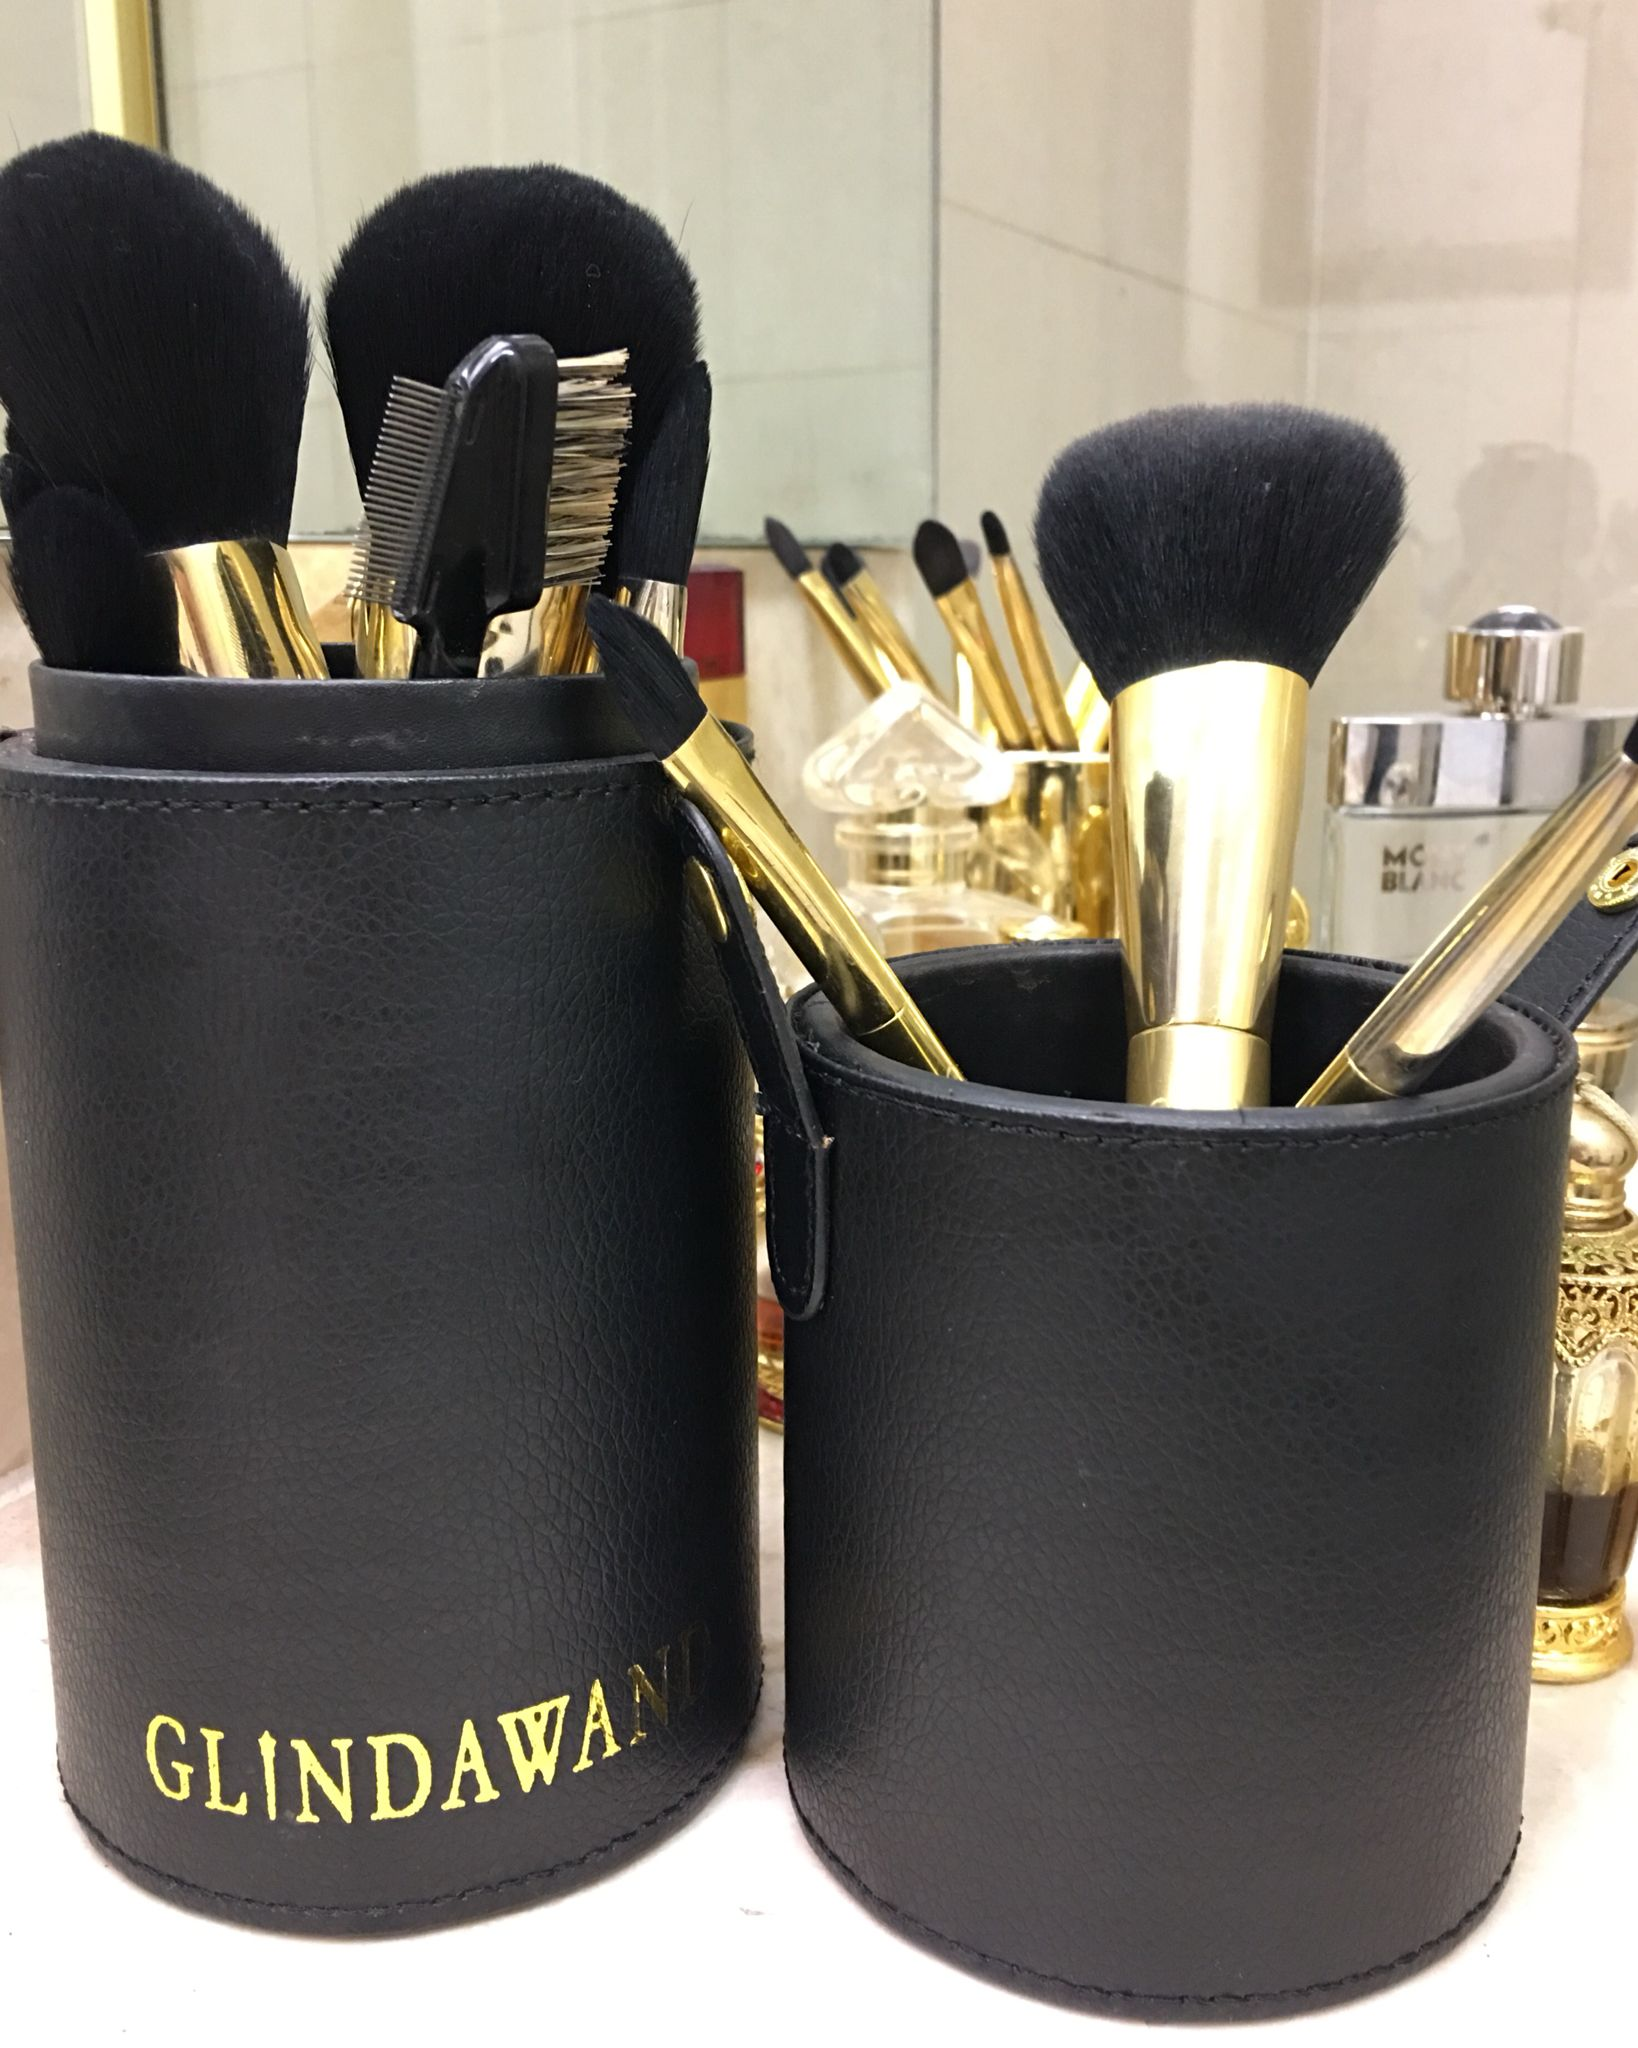 Gold Plated Makeup Brushes exclusively GlindaWand Gold